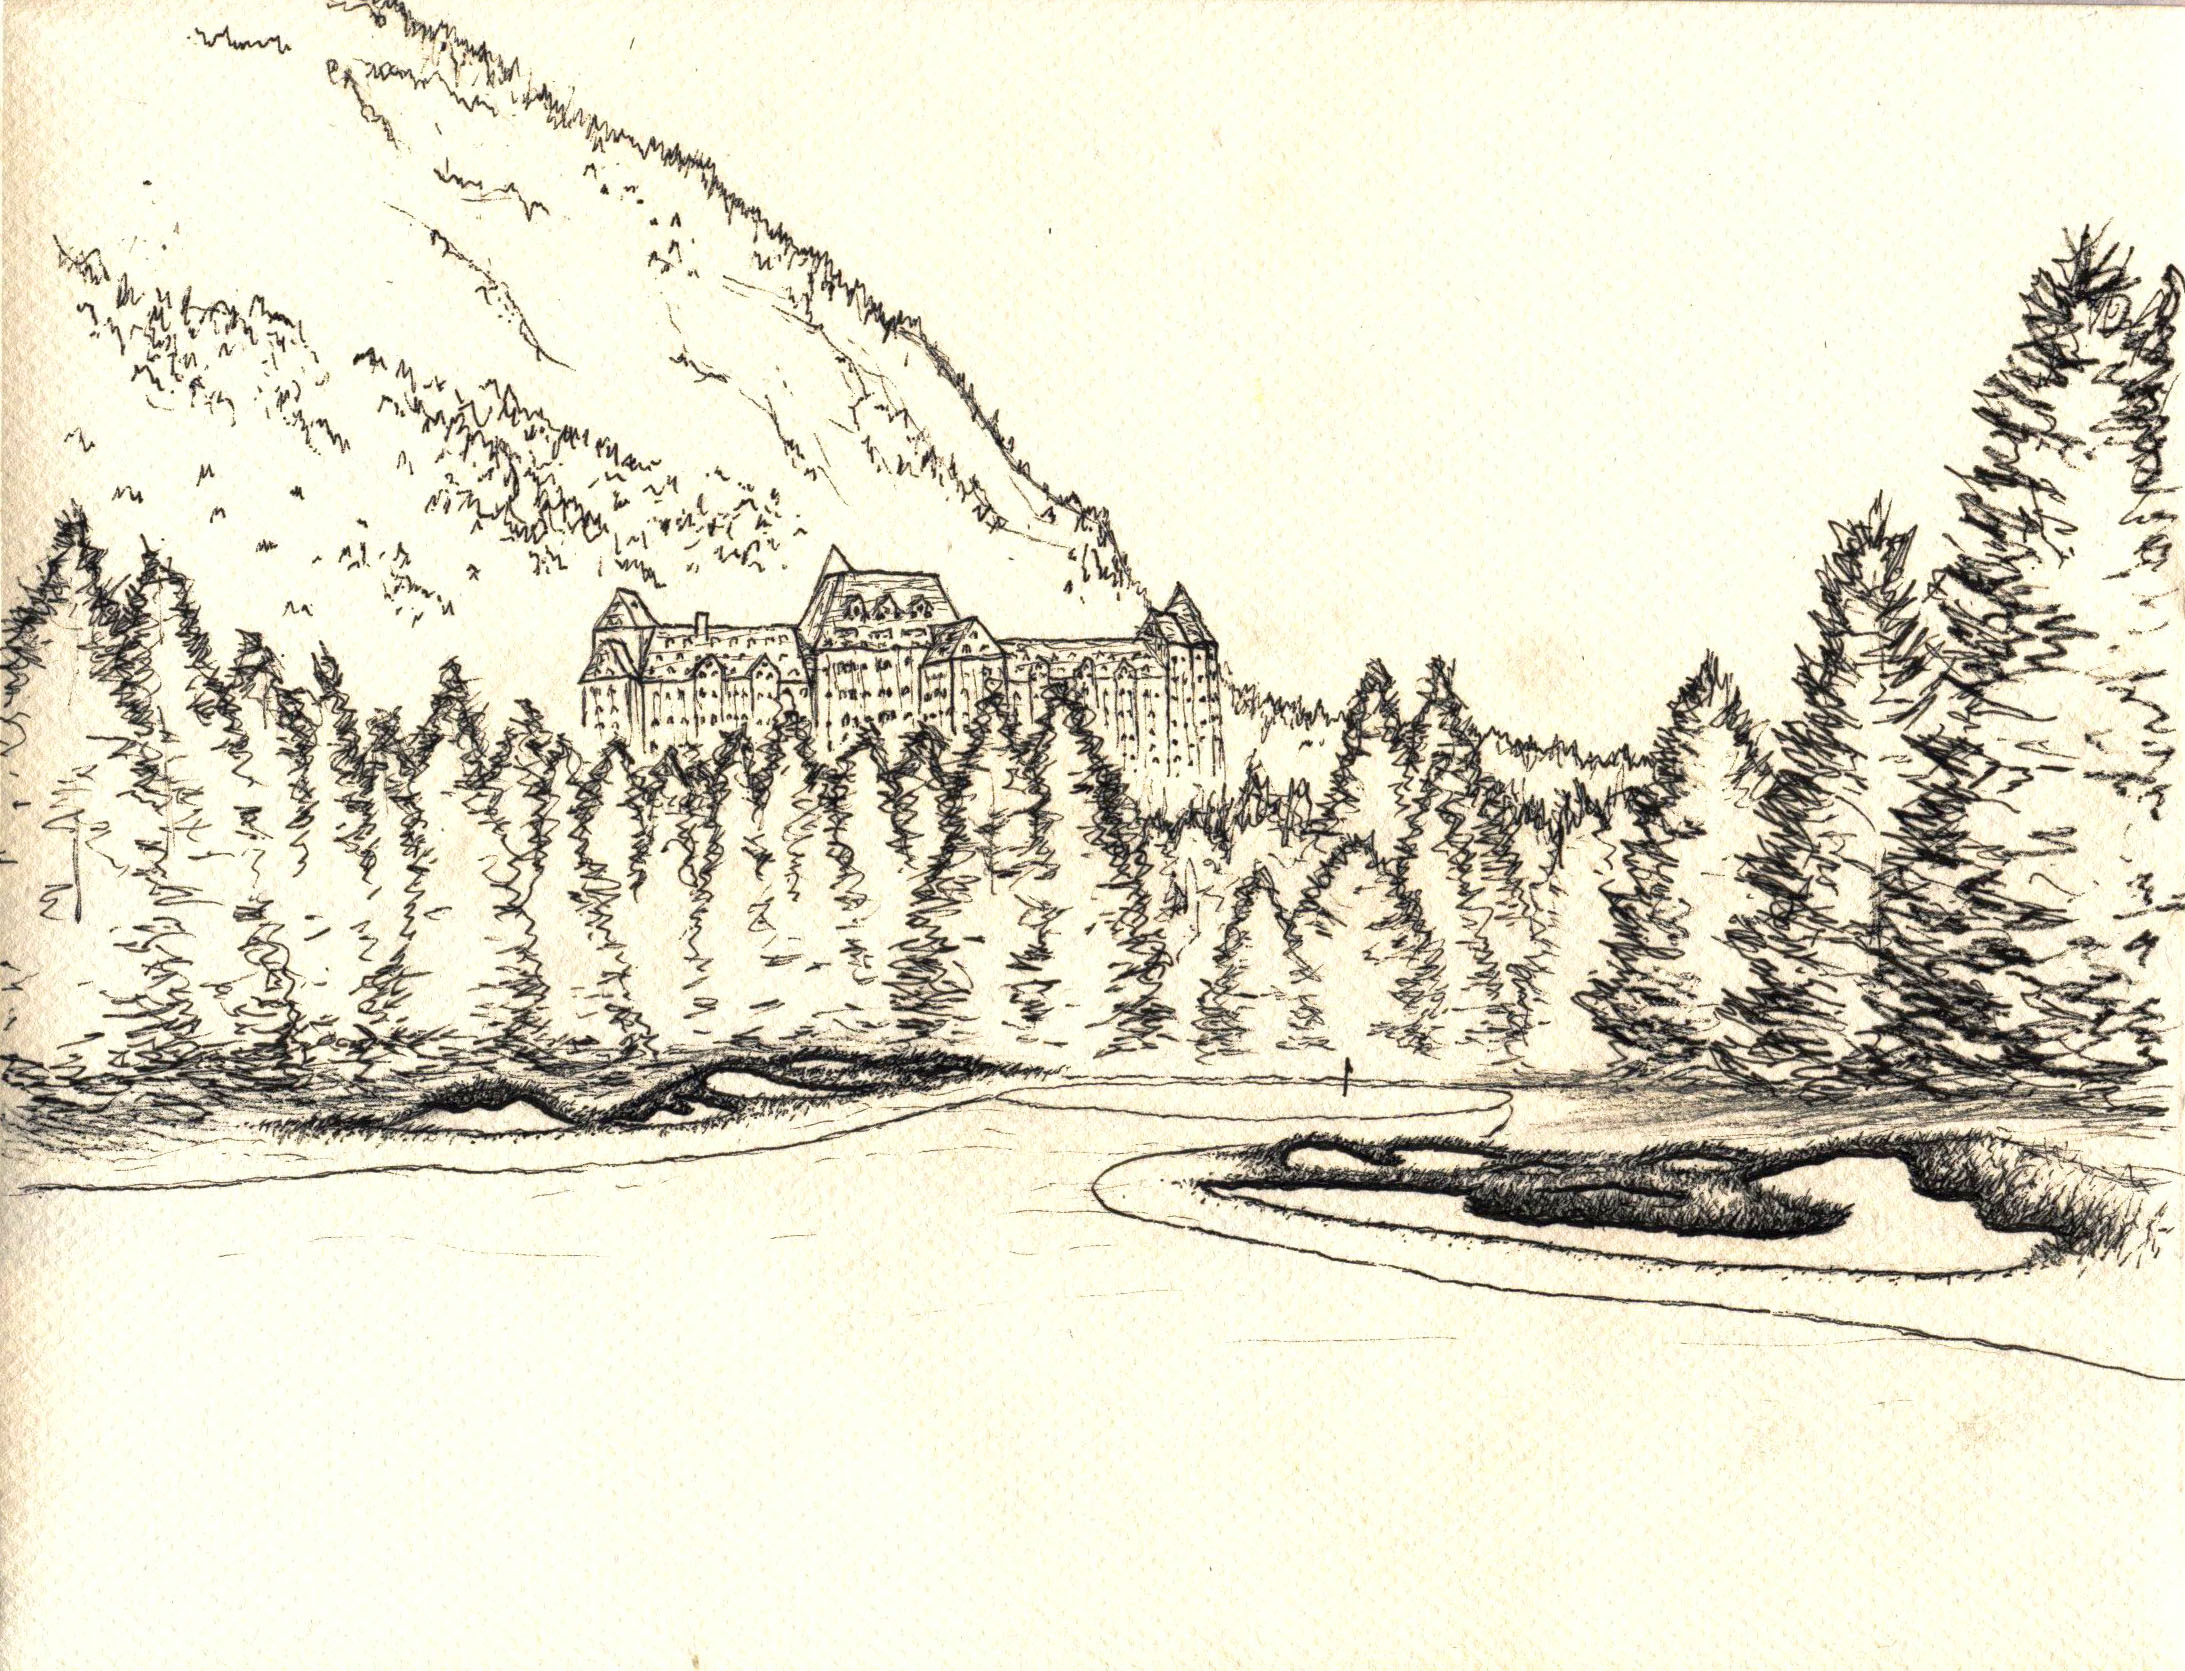 Sketch of Banff Springs with it's iconic setting and hotel.